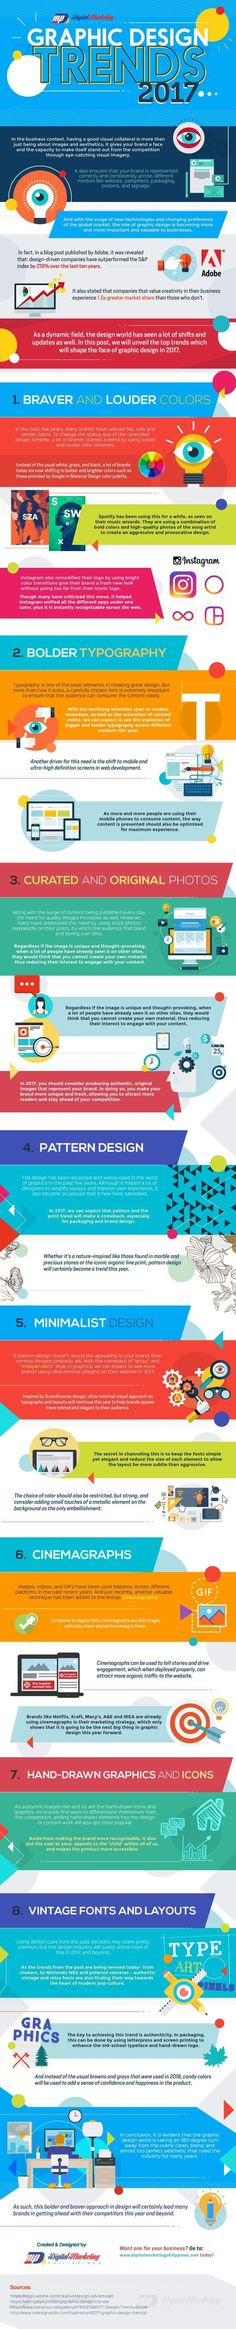 8 Graphic Design Trends to Add Some Oomph to Your 2017 Marketing Campaign [Infographic] #onlinebusiness #startup #entrepreneur #entrepreneur #followback #startup